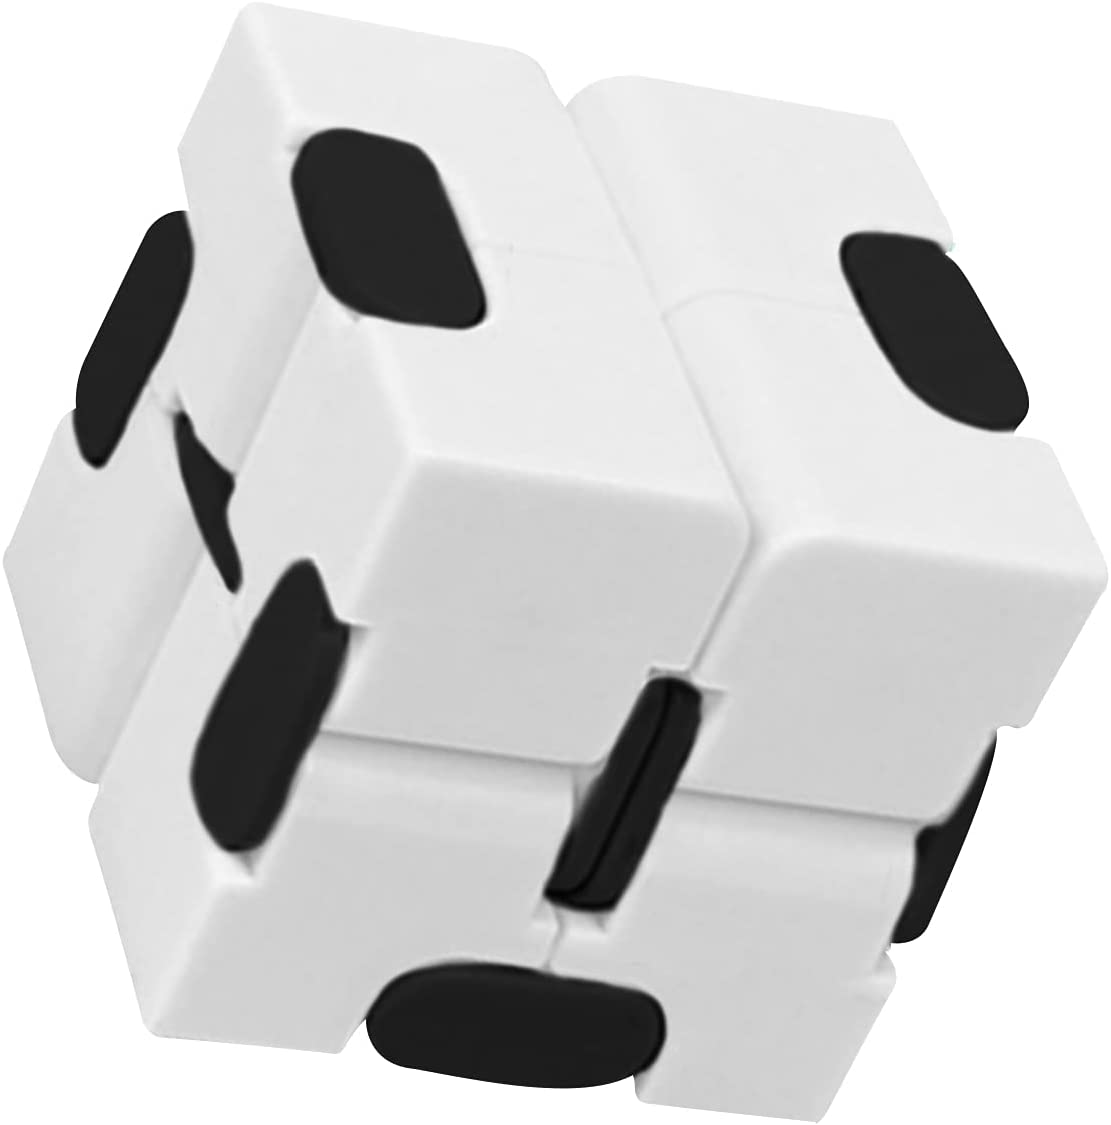 Xiakolaka Infinity Cube Fidget Toy Cheap/Anxiety Relief Infinite Fidget Cube Small Cube Kill Time for Kids and Adults Blue